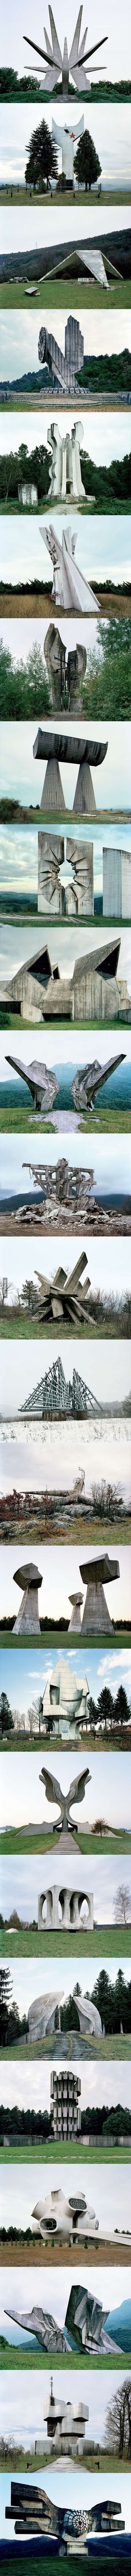 Abandoned monuments that look like they're from the future. Kosmaj,Serbia; Zenica, Bosnia; Sinj,Croatia; Nikšić,Montenegro; Sisak,Croatia; Ostra,Serbia; Brezovica,Serbia; Unknown; Kadinjača, Serbia; Kolašin,Montenegro; Tjentište,Bosnia; Makljen,Bosnia; Knin,Croatia; Korenica,Croatia; Košute,Croatia; Niš,Serbia; Sanski most,Bosnia; Jasenovac,Croatia; Ilirska Bistrica,Slovenia; Grmeč,Bosnia; Kozara,Bosnia; Kragujevac,Serbia; Tjentište,Bosnia; Petrova Gora,Croatia; Podgarić,Croatia